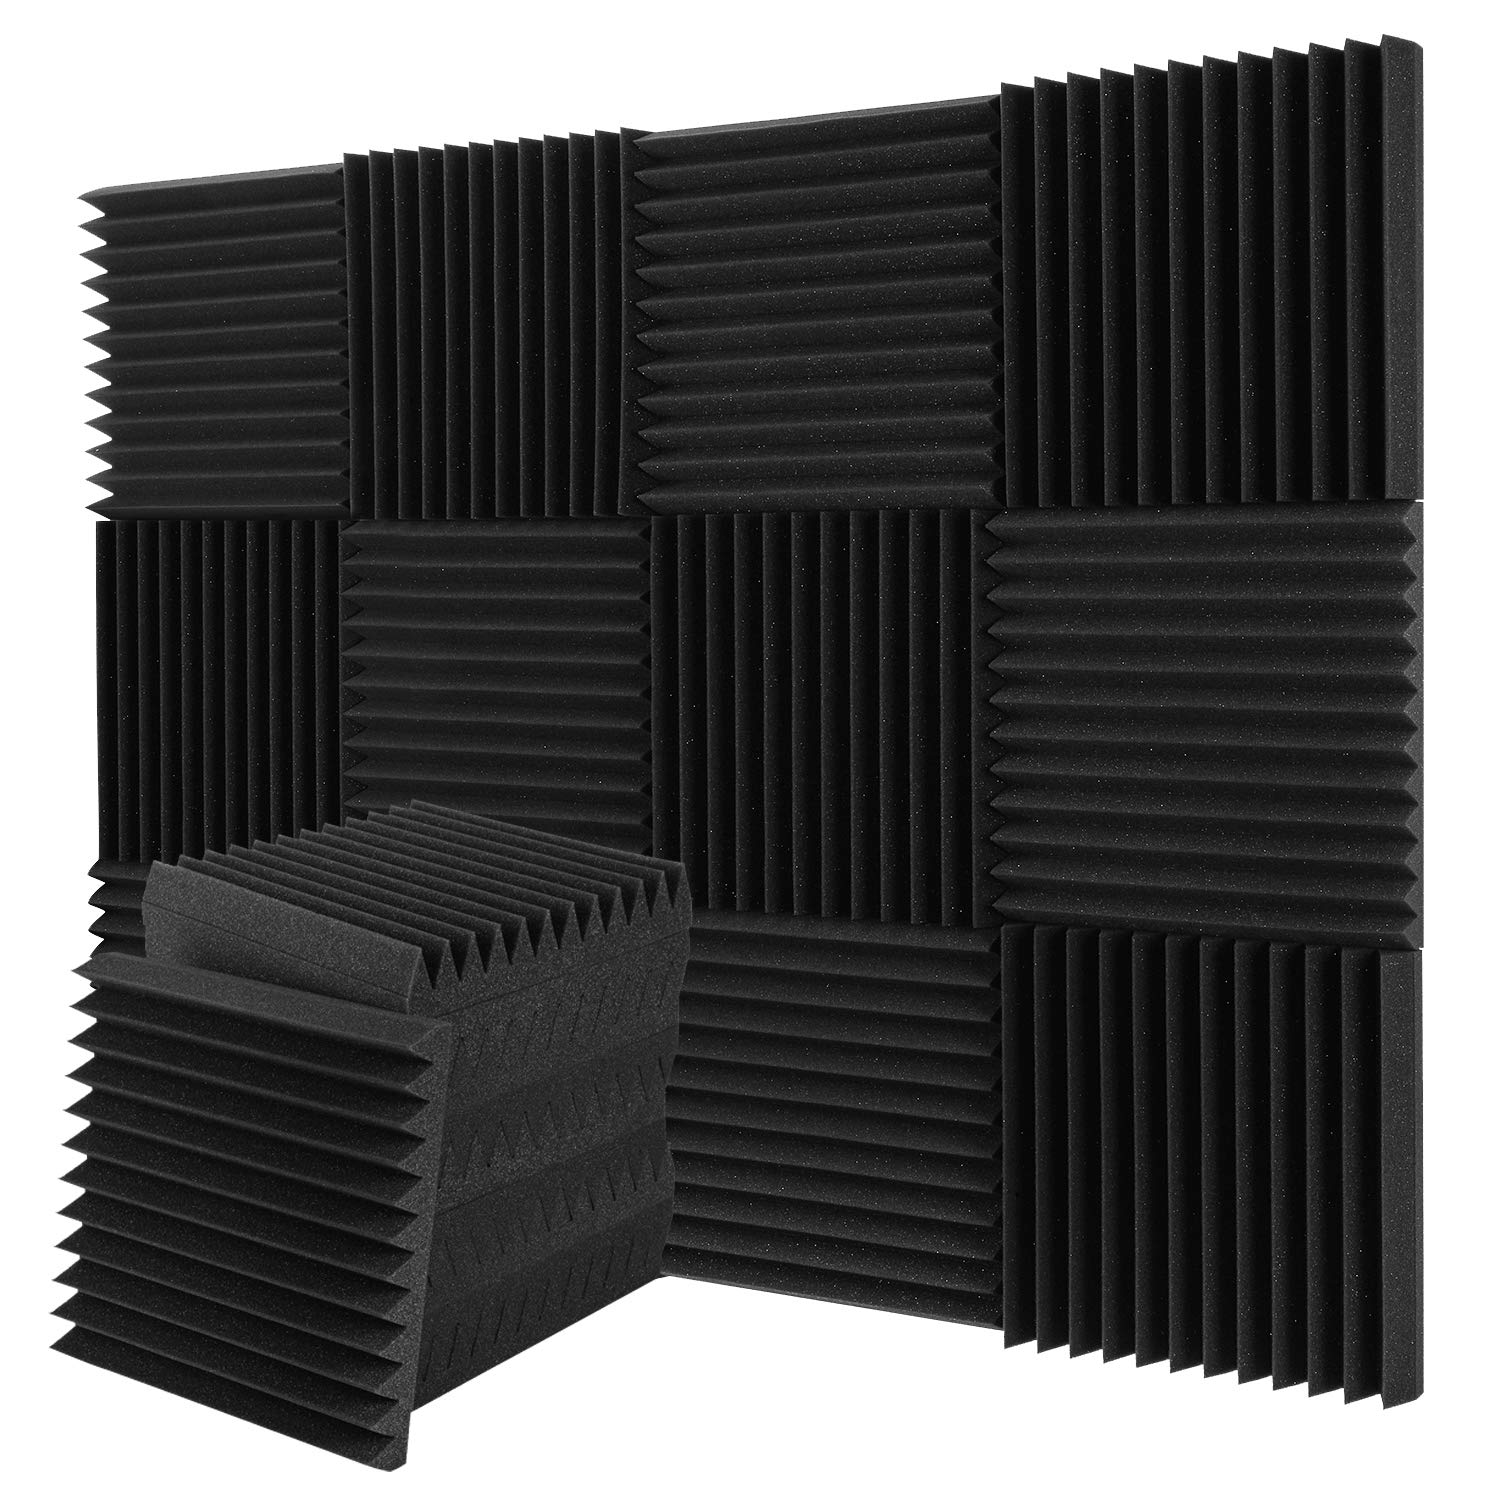 Donner 12-Pack Acoustic Foam Panels Wedges, Fireproof Soundproofing Foam Noise Cancelling Foam for Studios, Recording Studios, Offices, Home Studios 2'' x 12'' x 12''